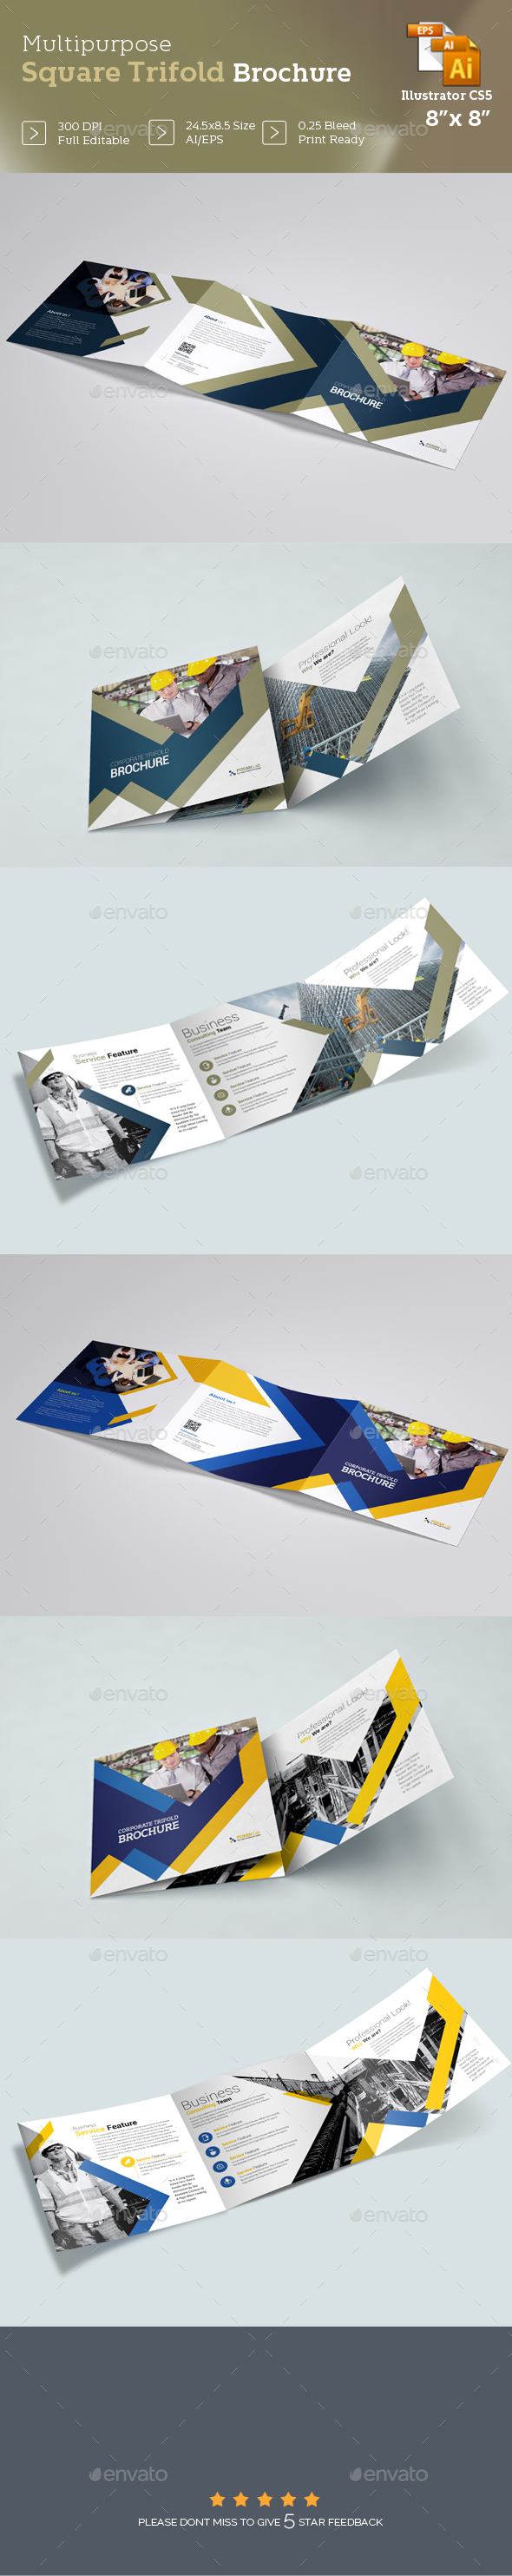 Business Square Trifold Brochure Template - Brochures Print Templates